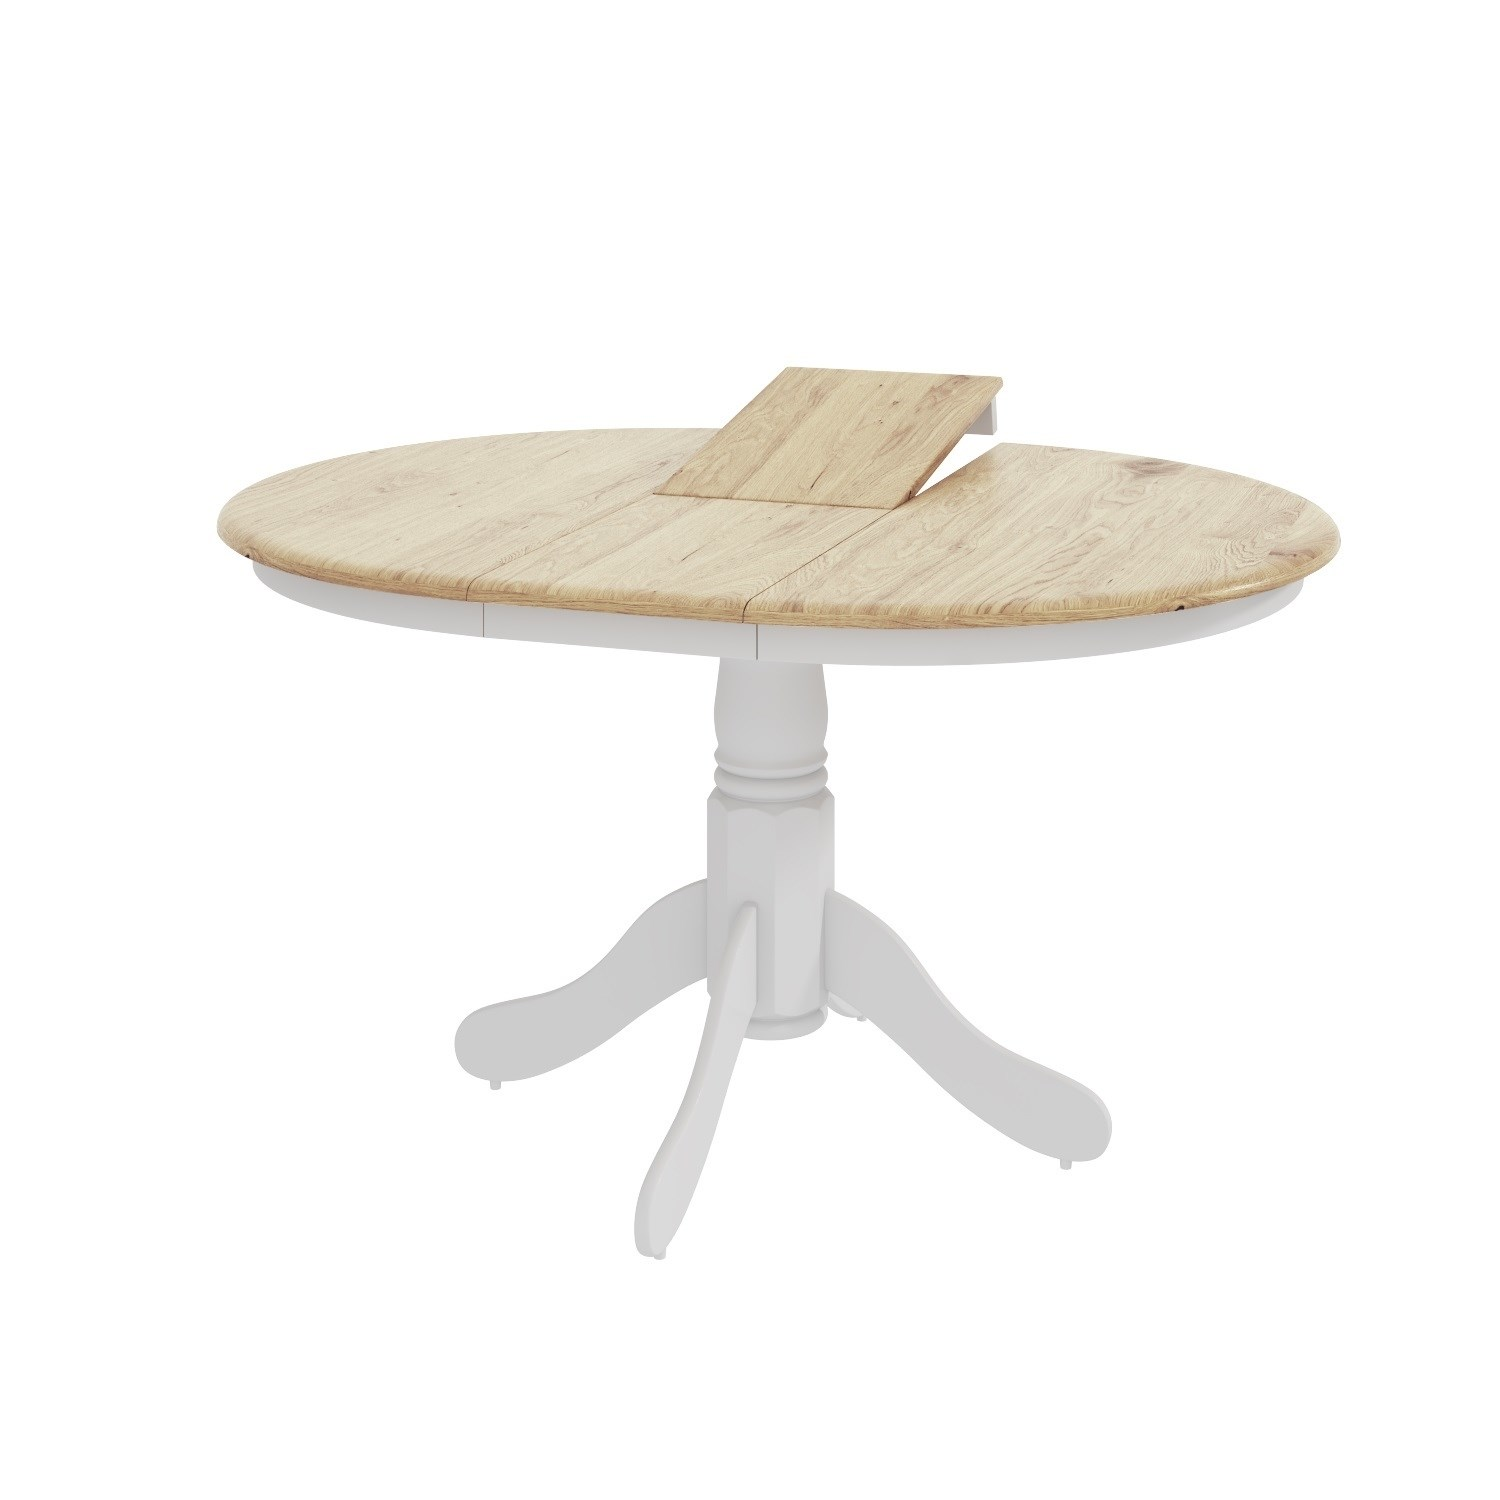 6 Seater Round Dining Table: Extendable Round Wooden Dining Table In White/Natural